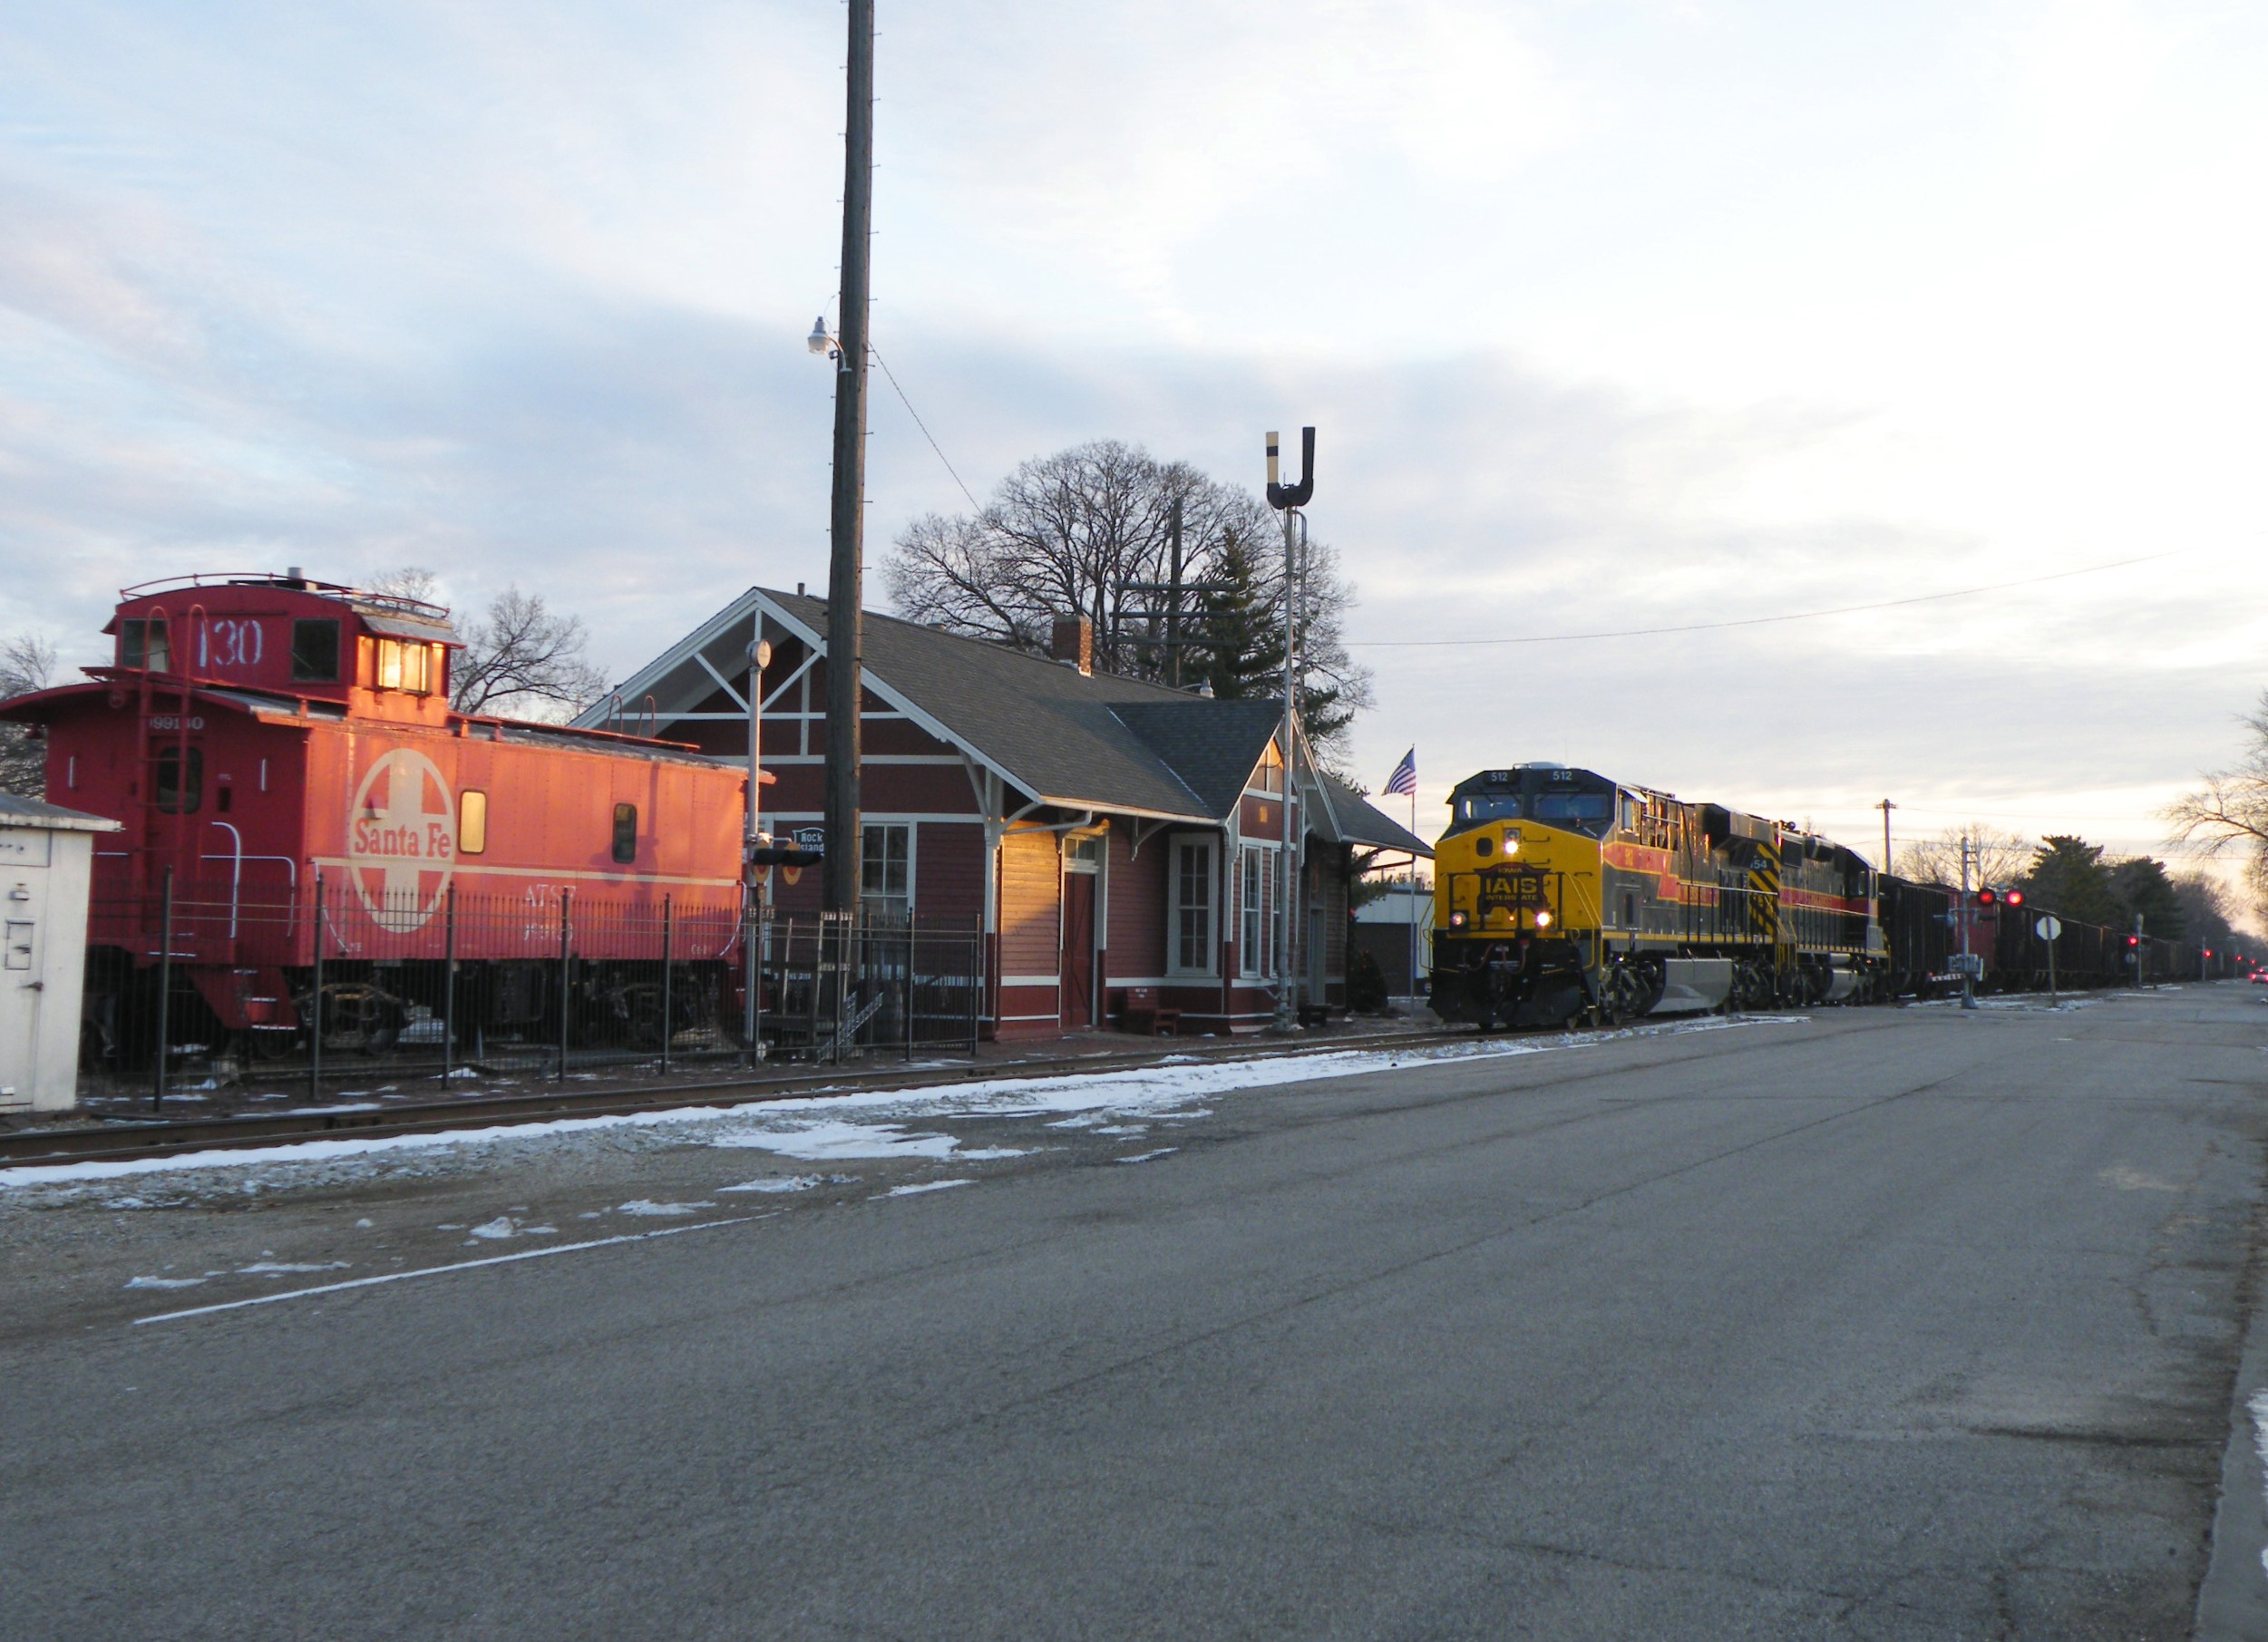 Iowa 512 has the coal train in control as they head back north passed the restored depot and caboose in Chillicothe.